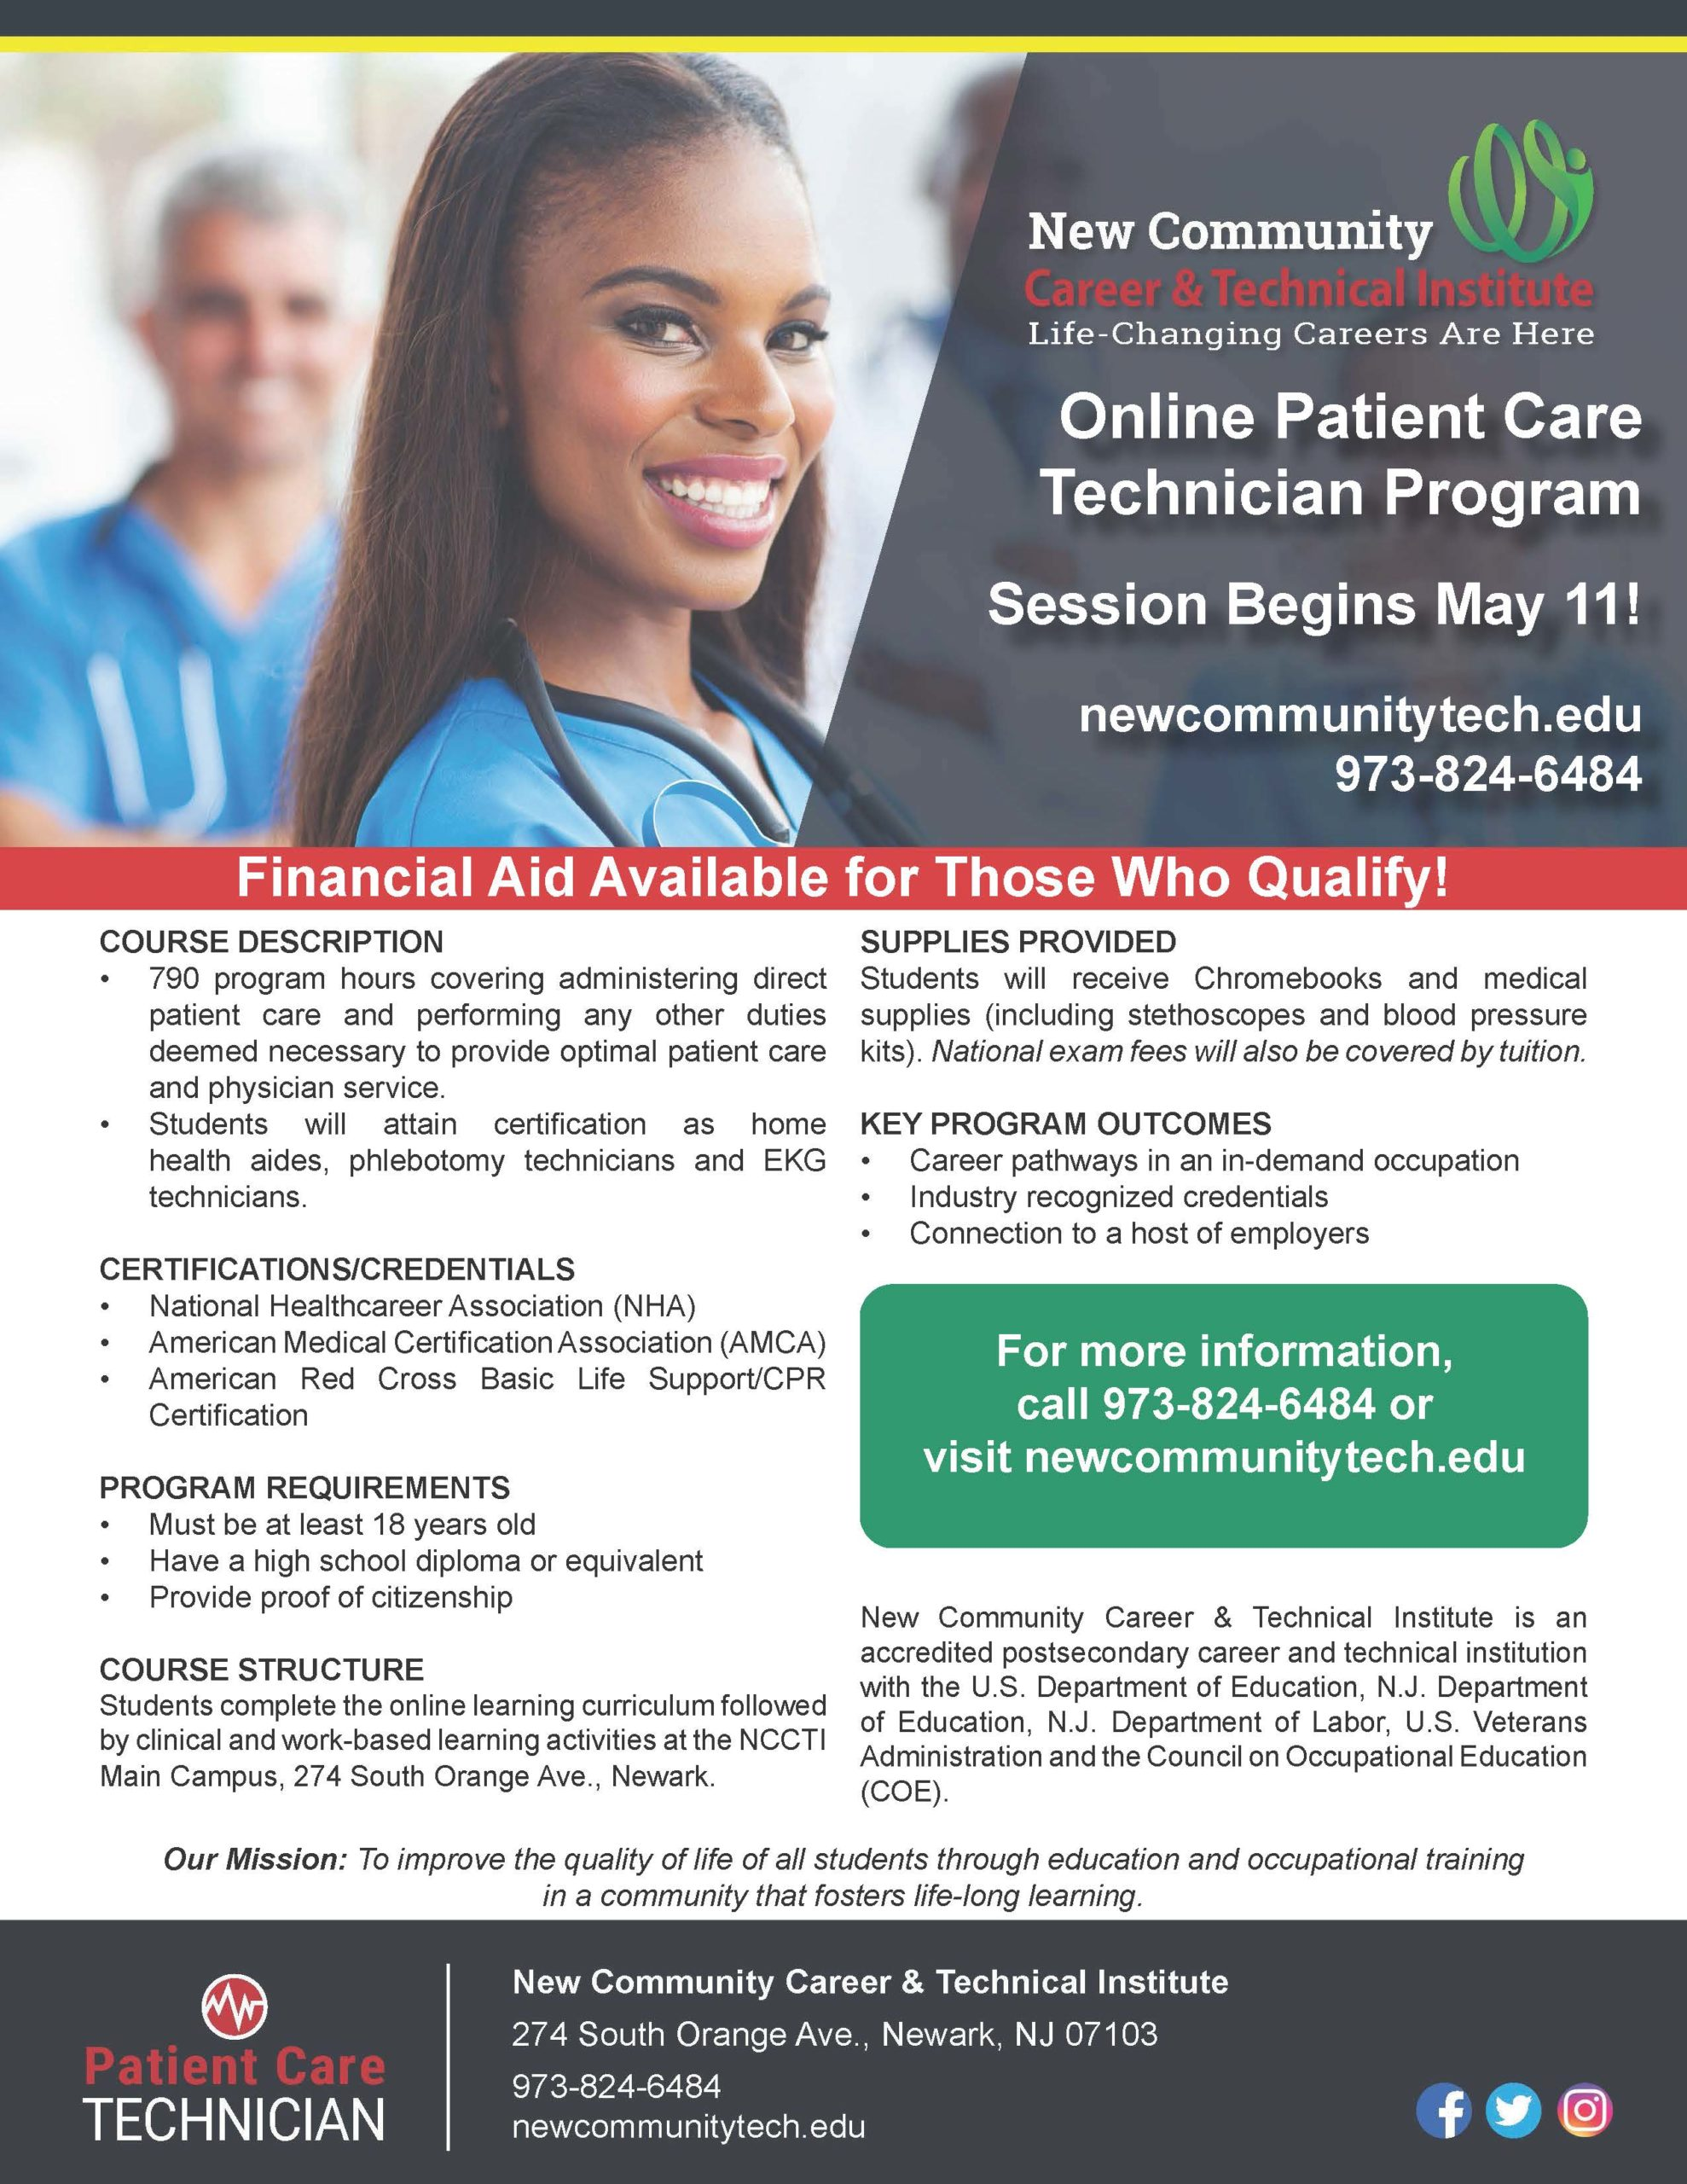 Online PCT Program Flyer 4-8-2020